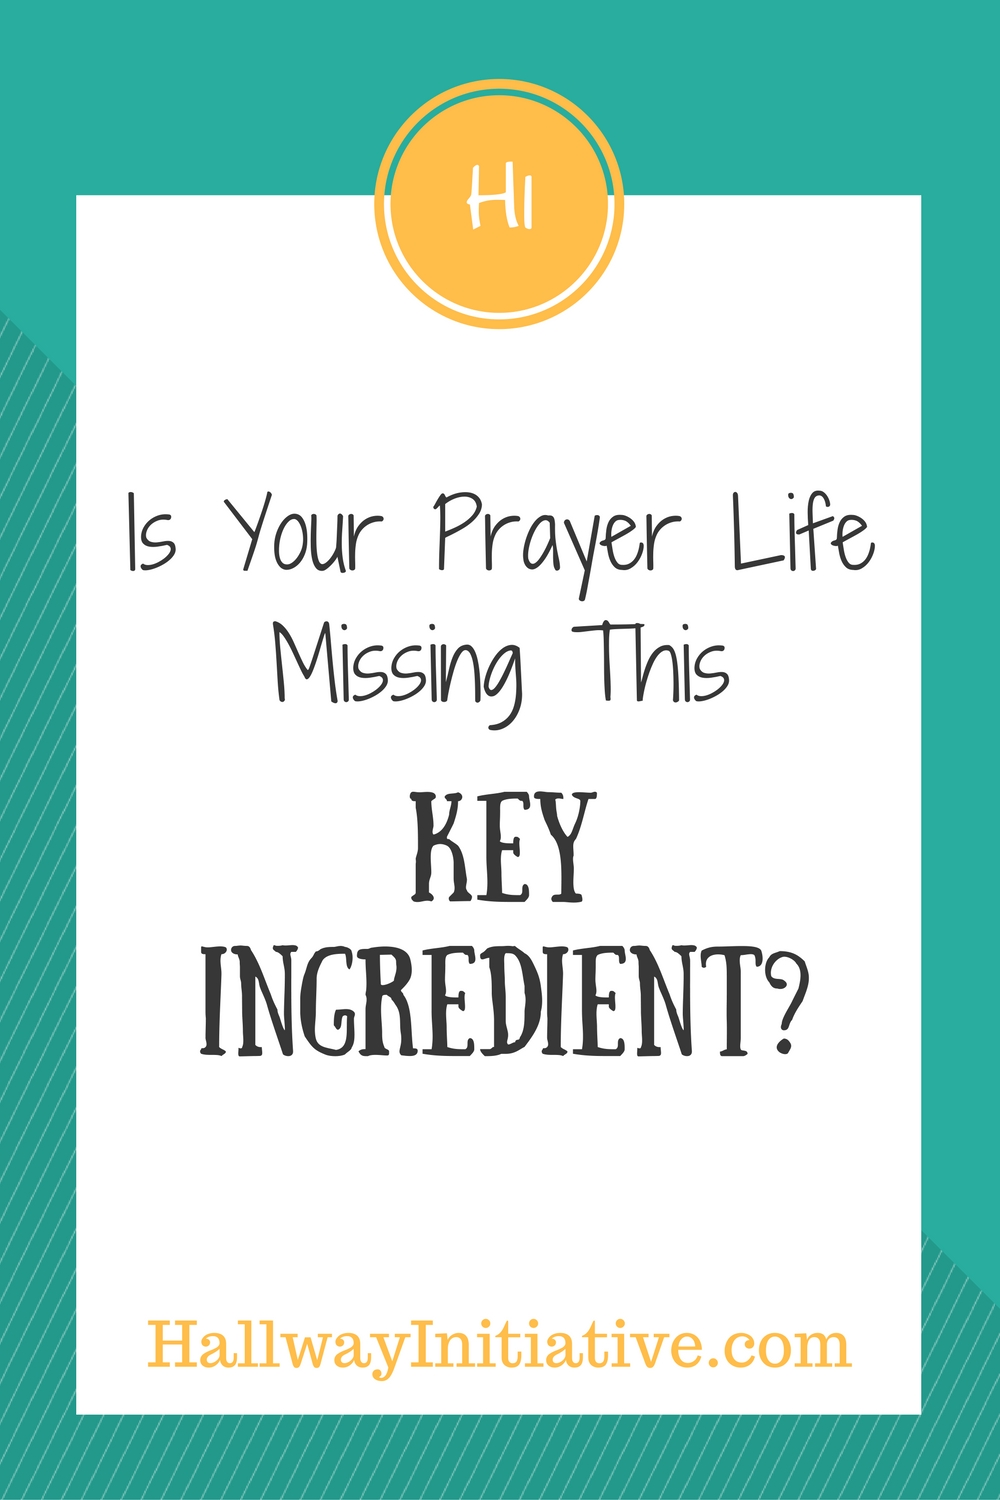 Is your prayer life missing this key ingredient?